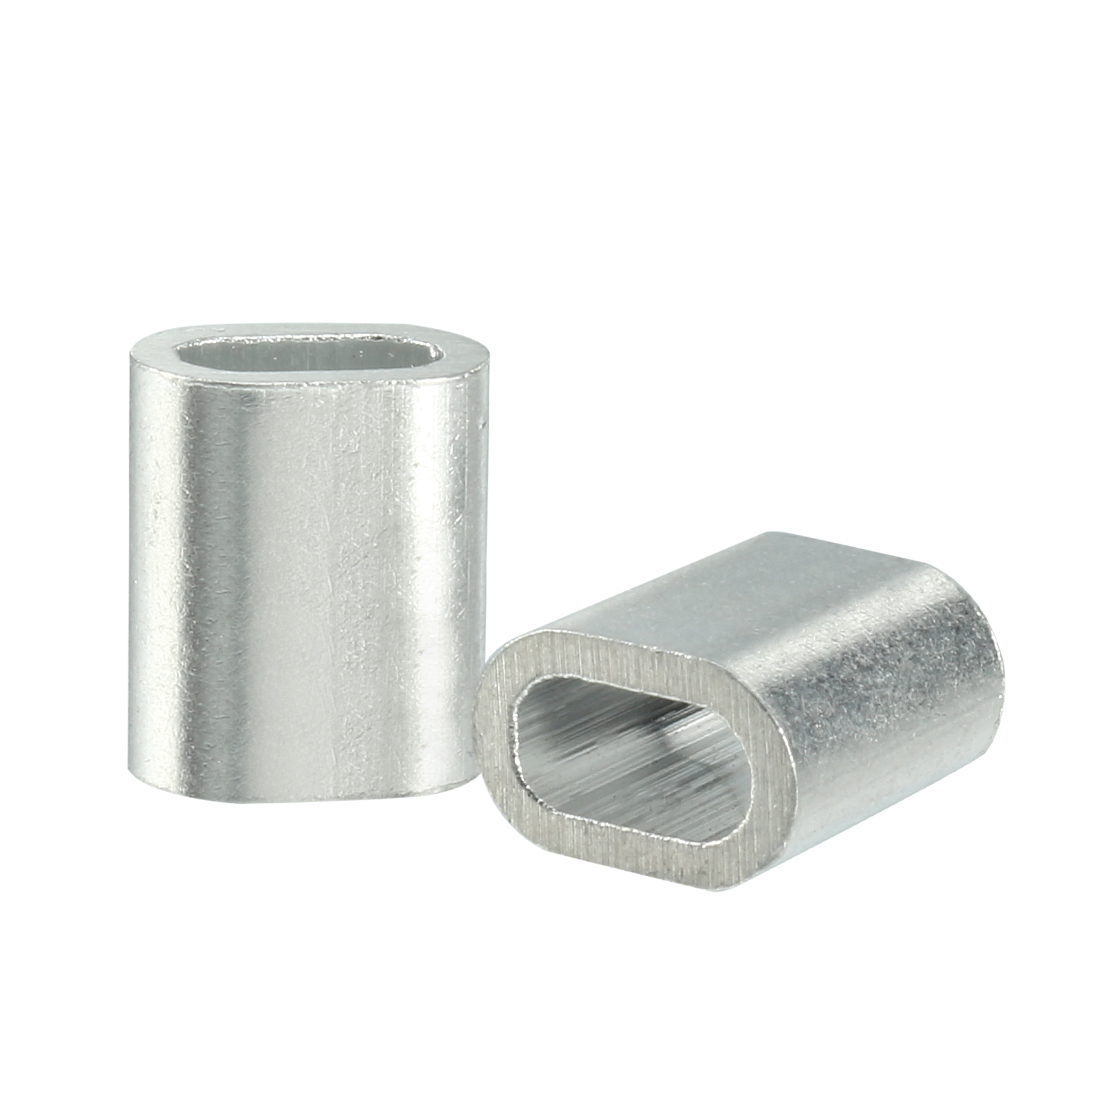 2mm 5/64-inch Cable Wire Rope Aluminum Sleeves Clip Fittings Crimps Loop 100pcs